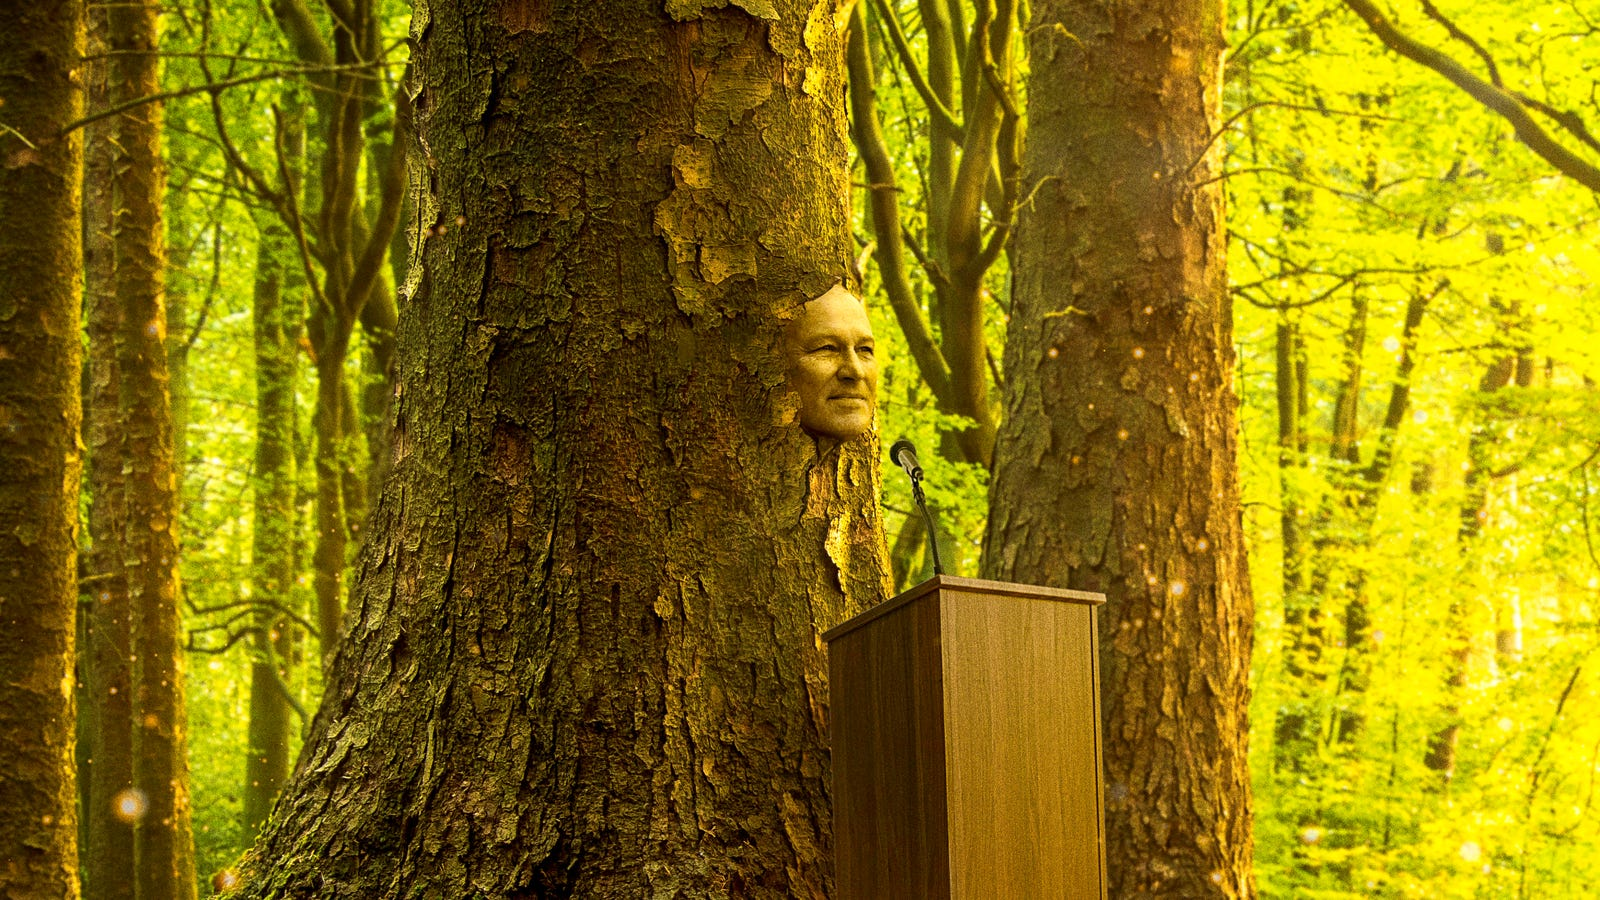 'Don't Worry, I'll Always Be Here To Fight Climate Change,' Says Jay Inslee Before Ethereally Turning Into Majestic Oak